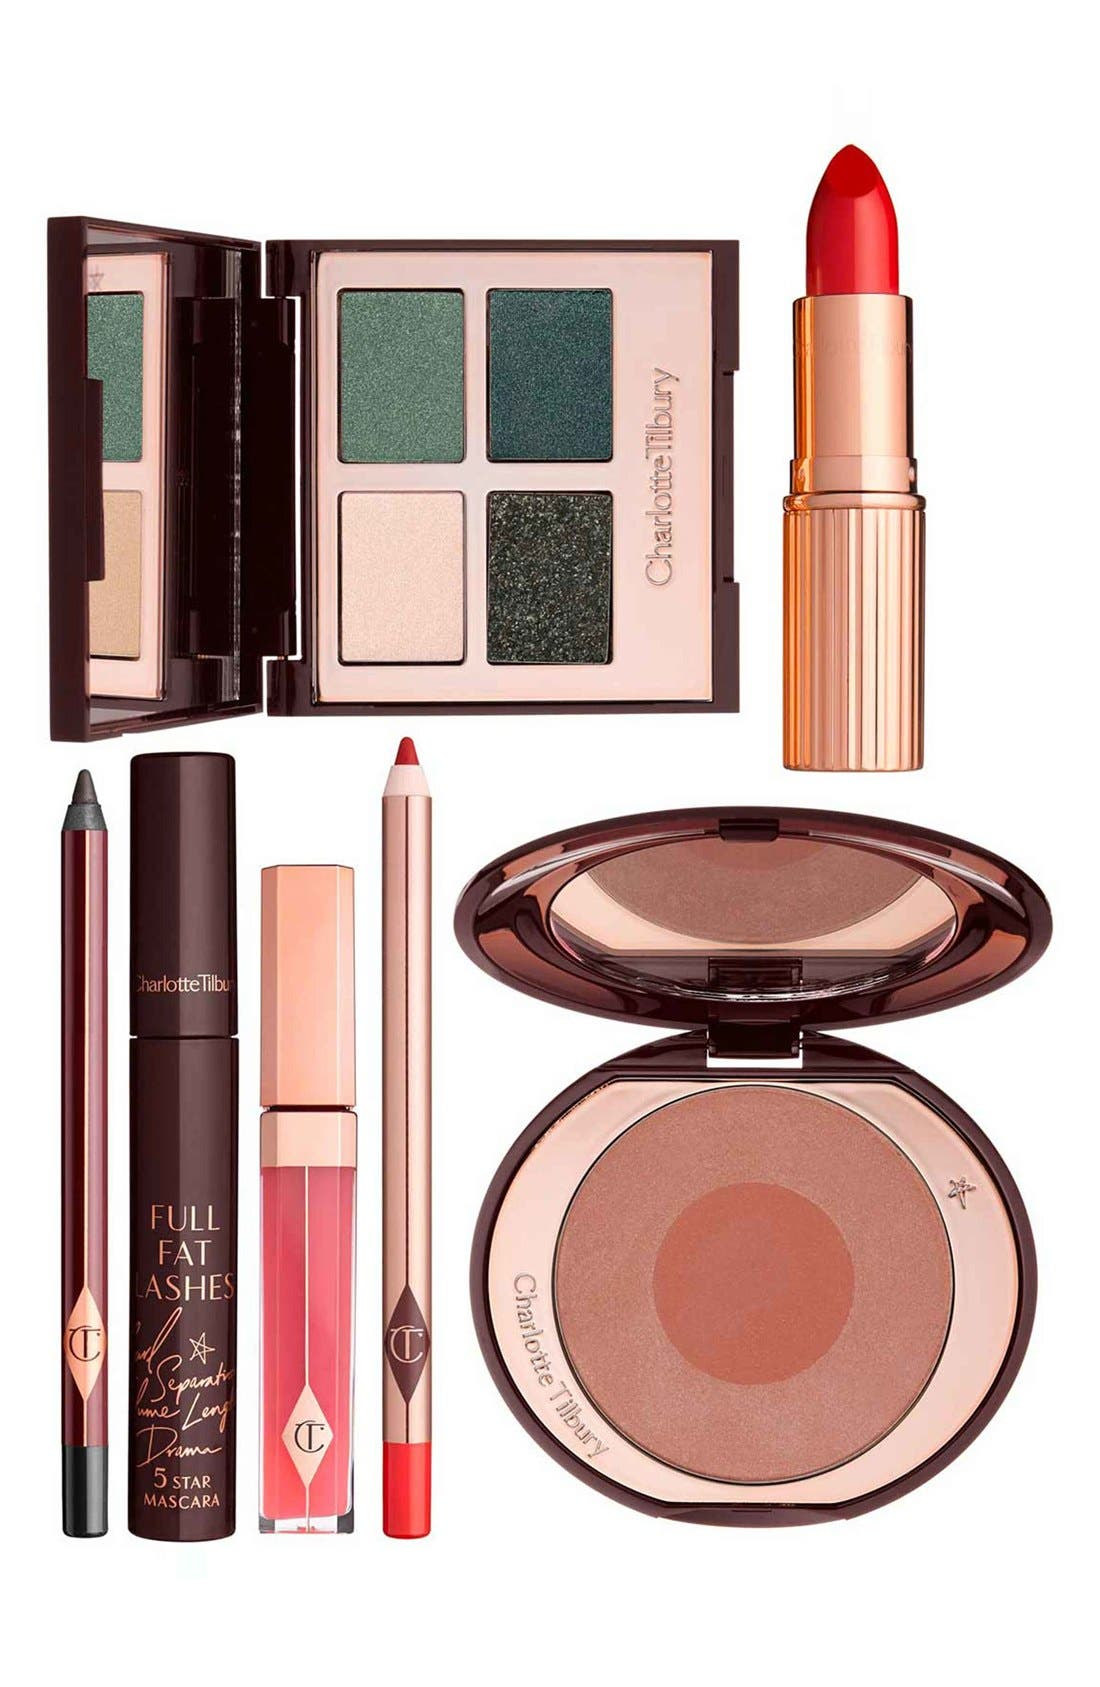 Charlotte Tilbury 'The Rebel' Set ($243 Value)